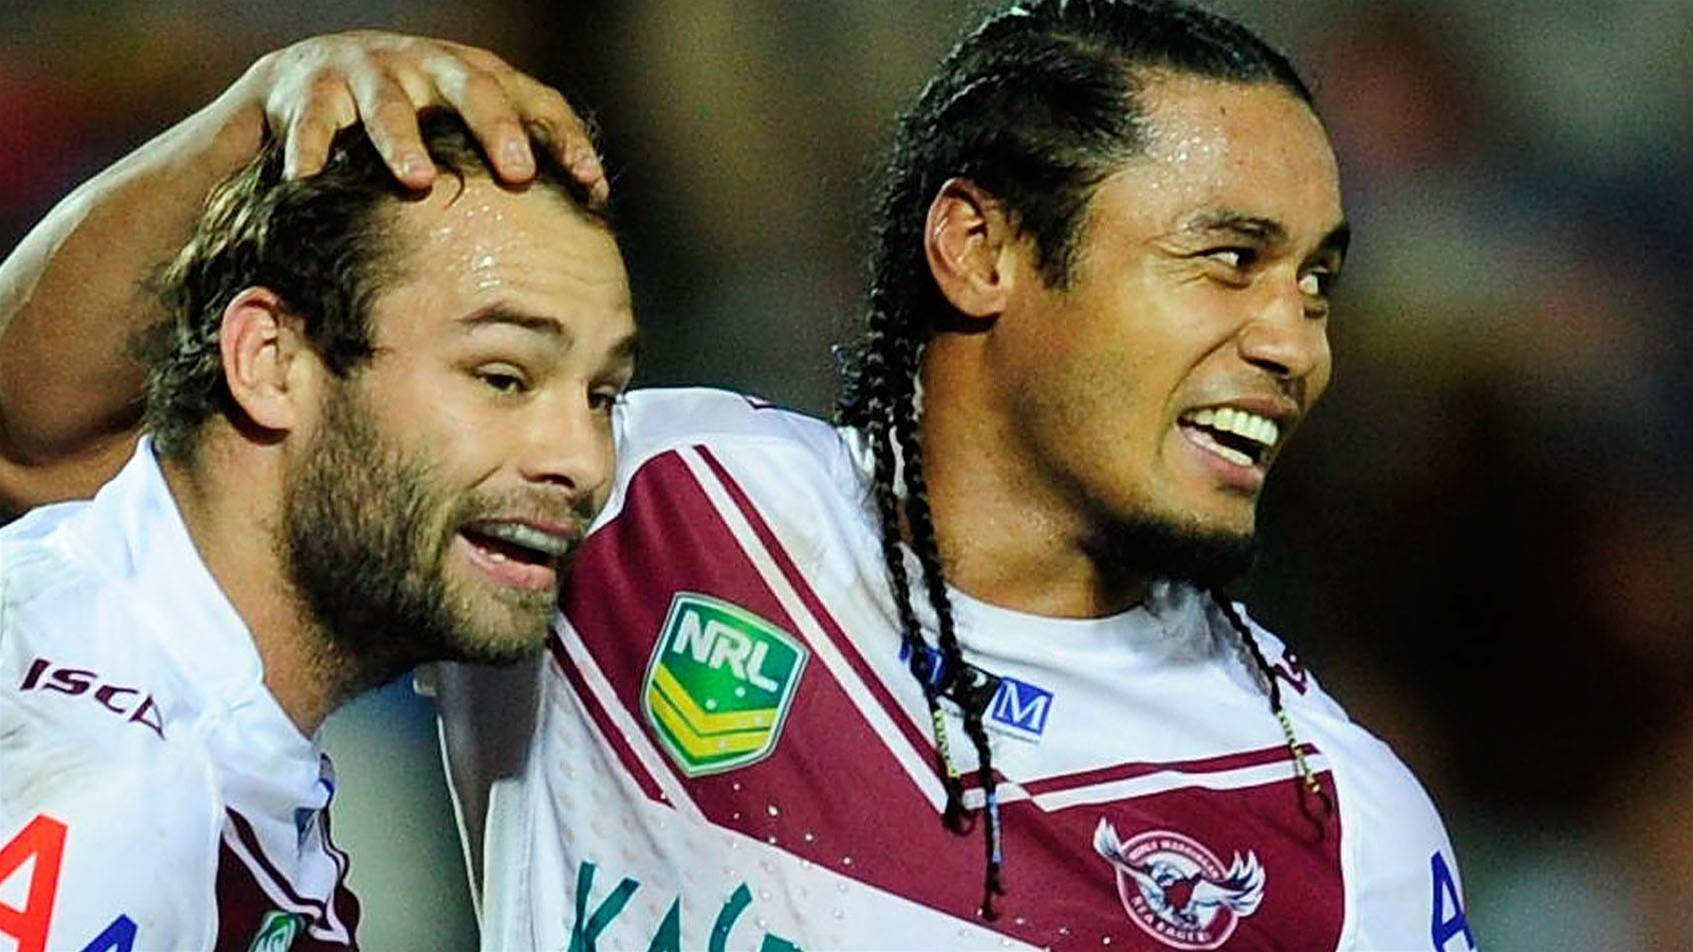 Stewart and Matai's careers officially over